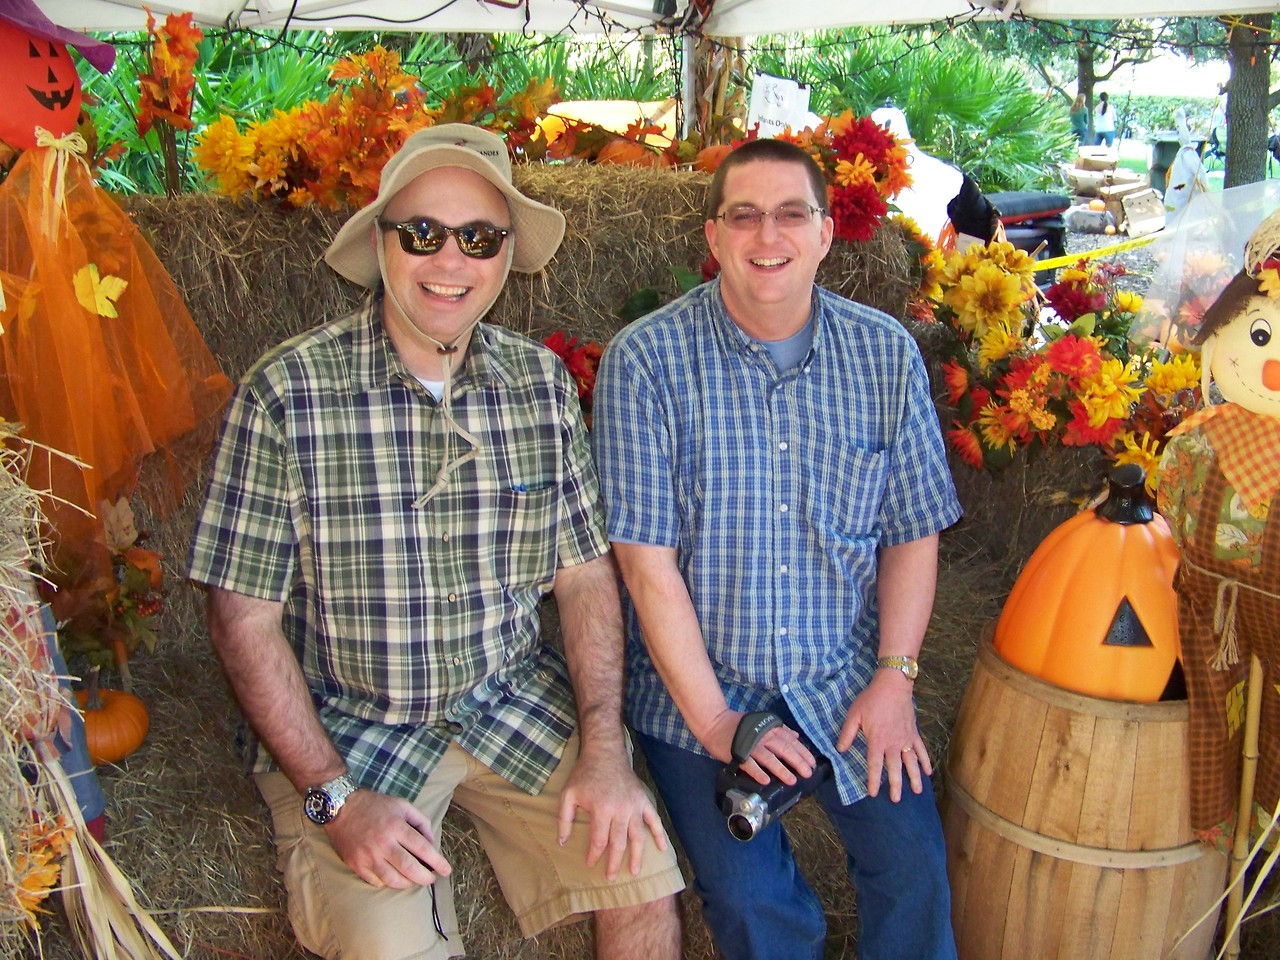 Pat and Jeff at the pumpkin patch.<br /> [Celebration, Florida]